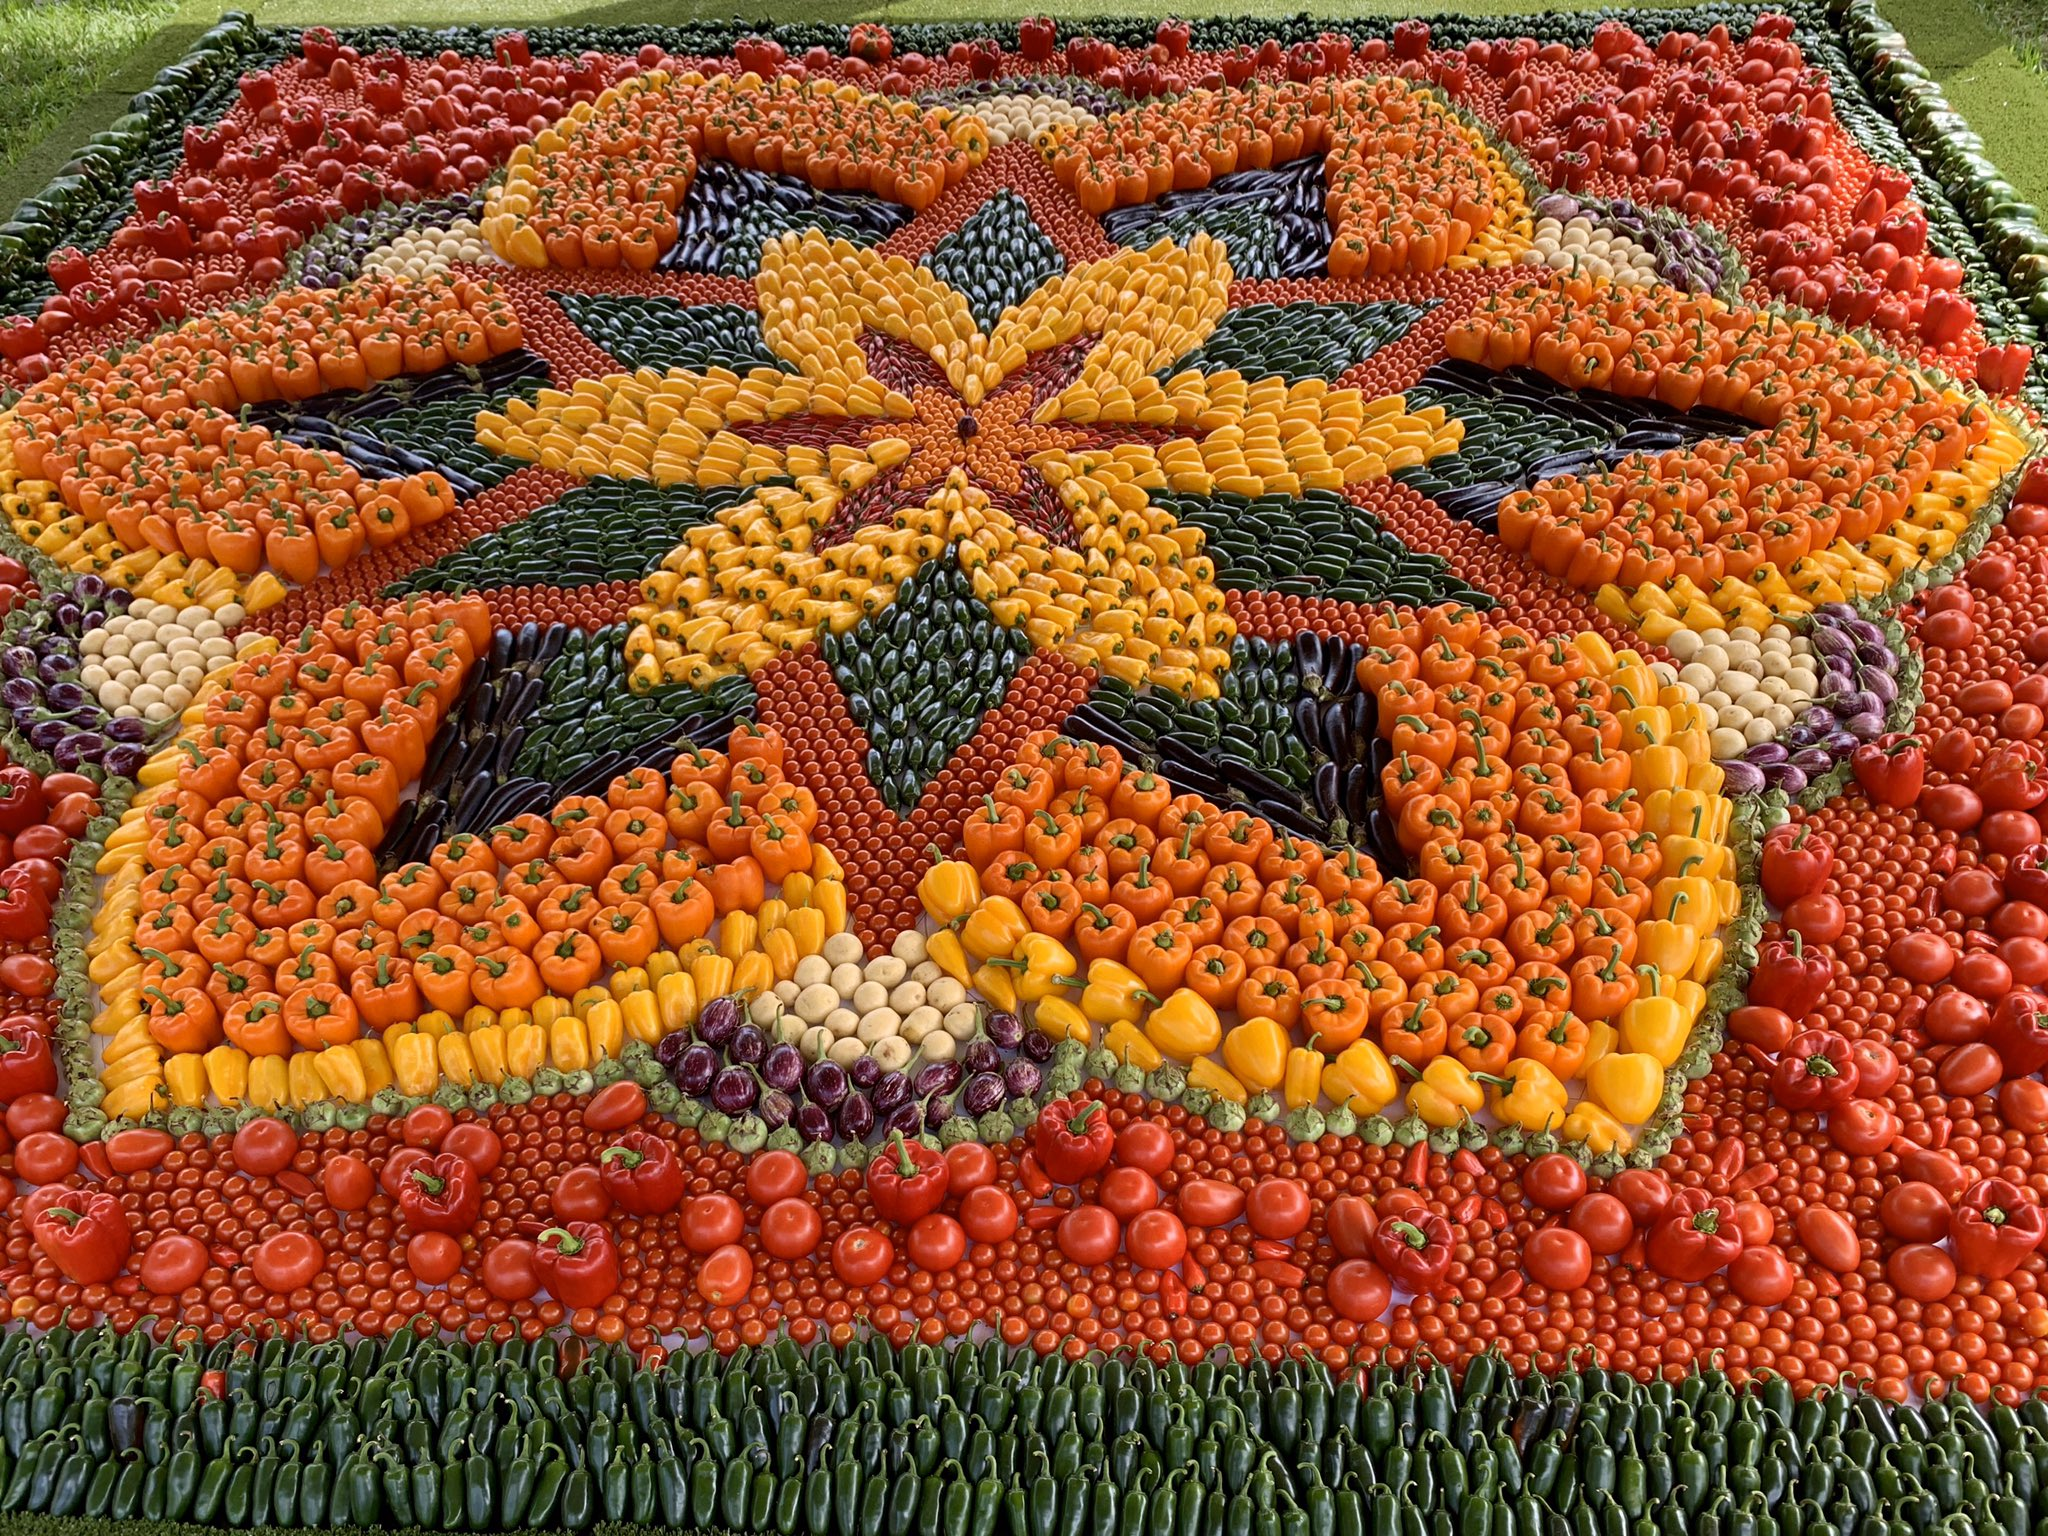 Another great #TomatoFestivalSydney and my last Mandala design for the festival.  The @RBGSydney Horticulture staff did an amazing job interpreting my coloured drawing into a masterpiece. Food is Art!  Was a bit tough this year as tomatoes are in shortage. #Solanaceae https://t.co/INaeob1iGx